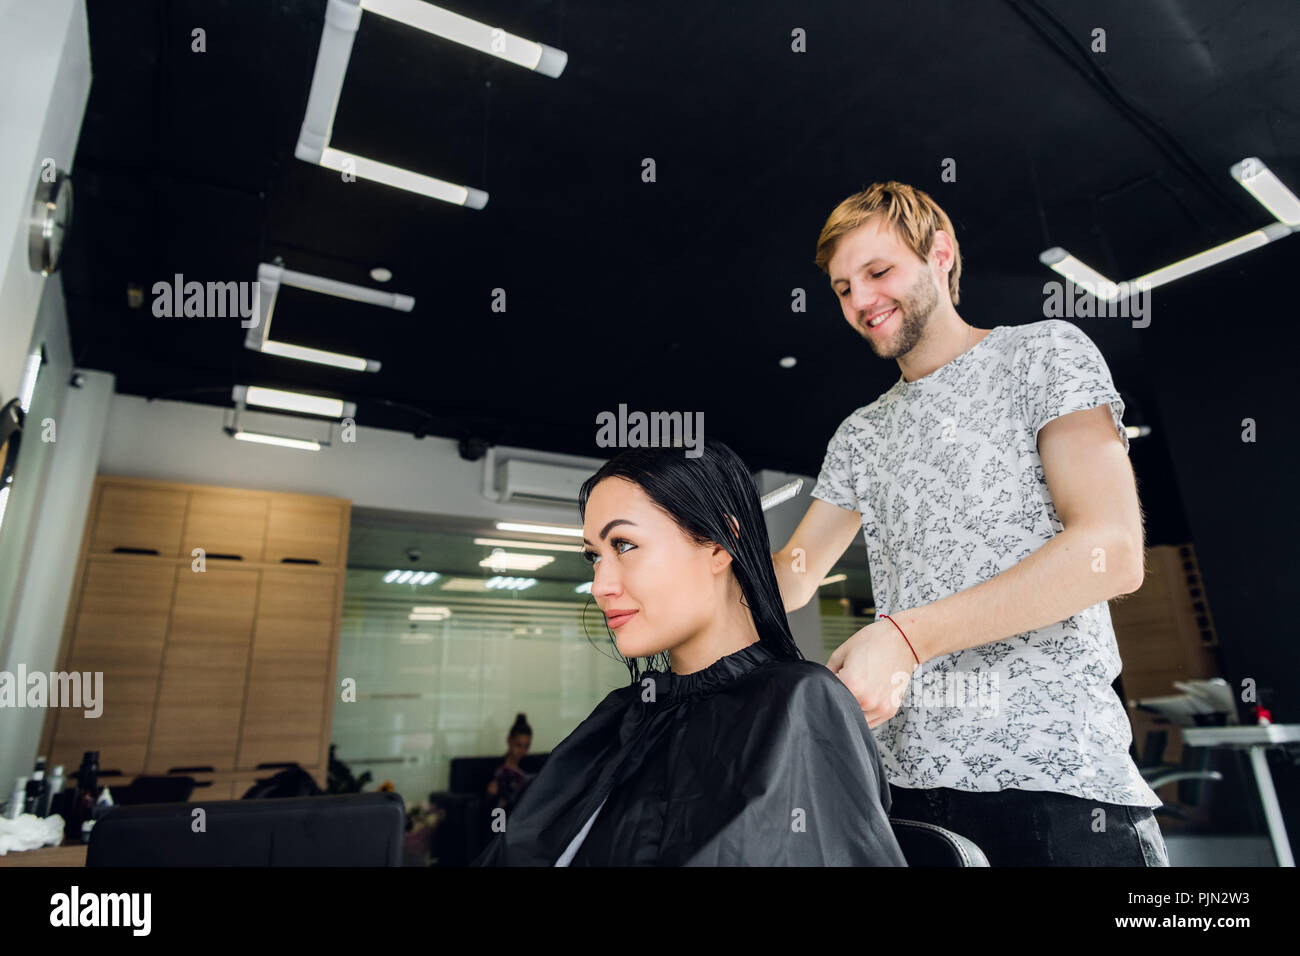 Professional hairdresser discussing female customer preferences in barbershop, choosing new hairdo - Stock Image